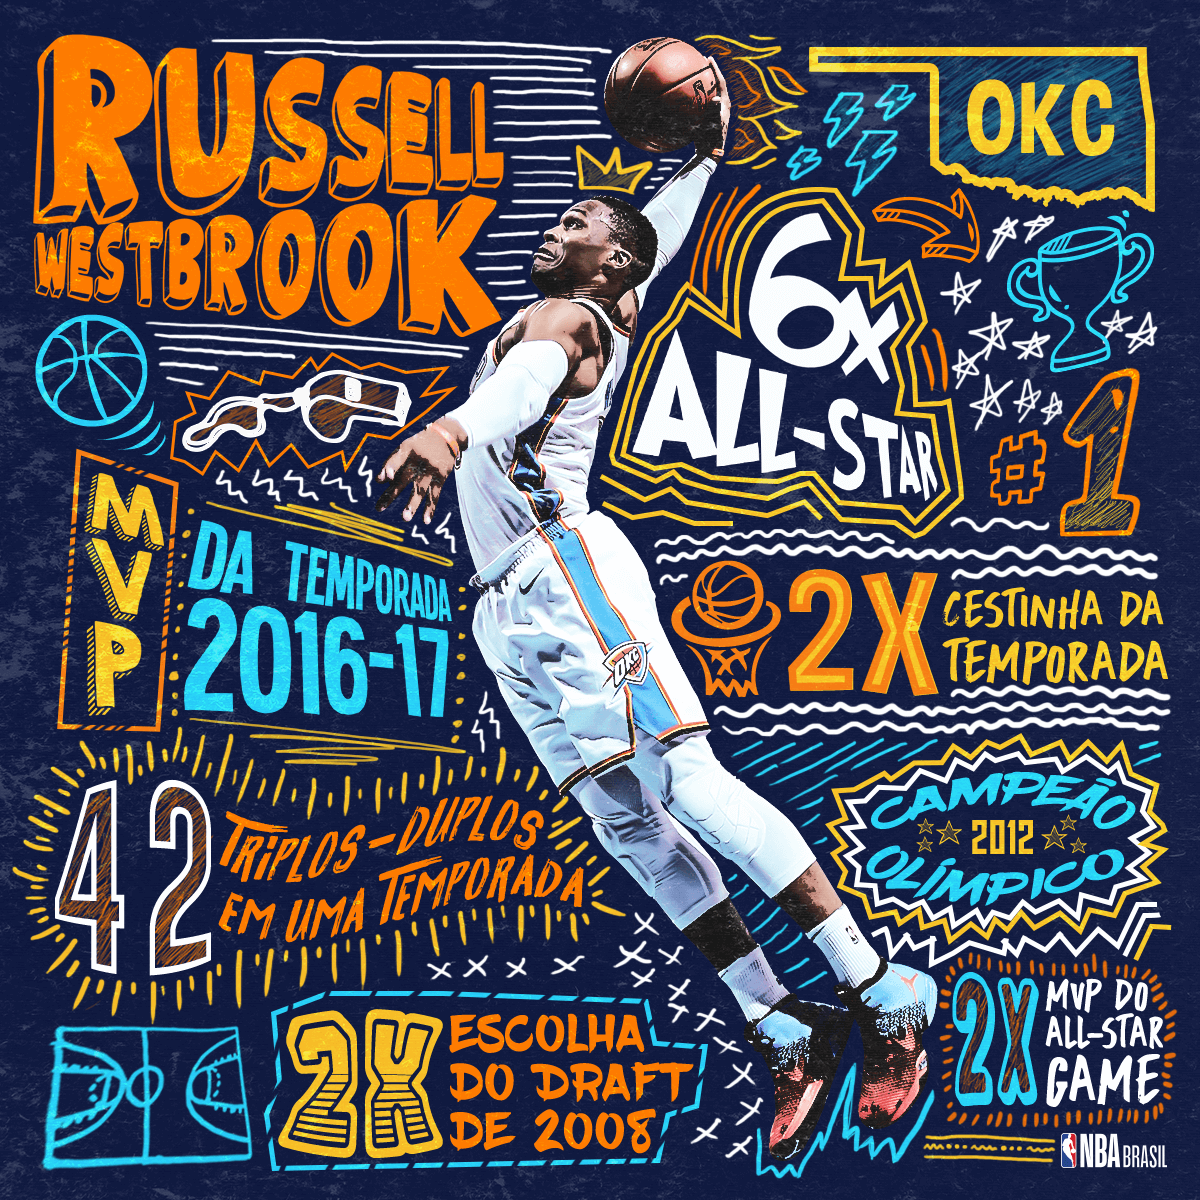 NBA-Especial-WestBrook-01